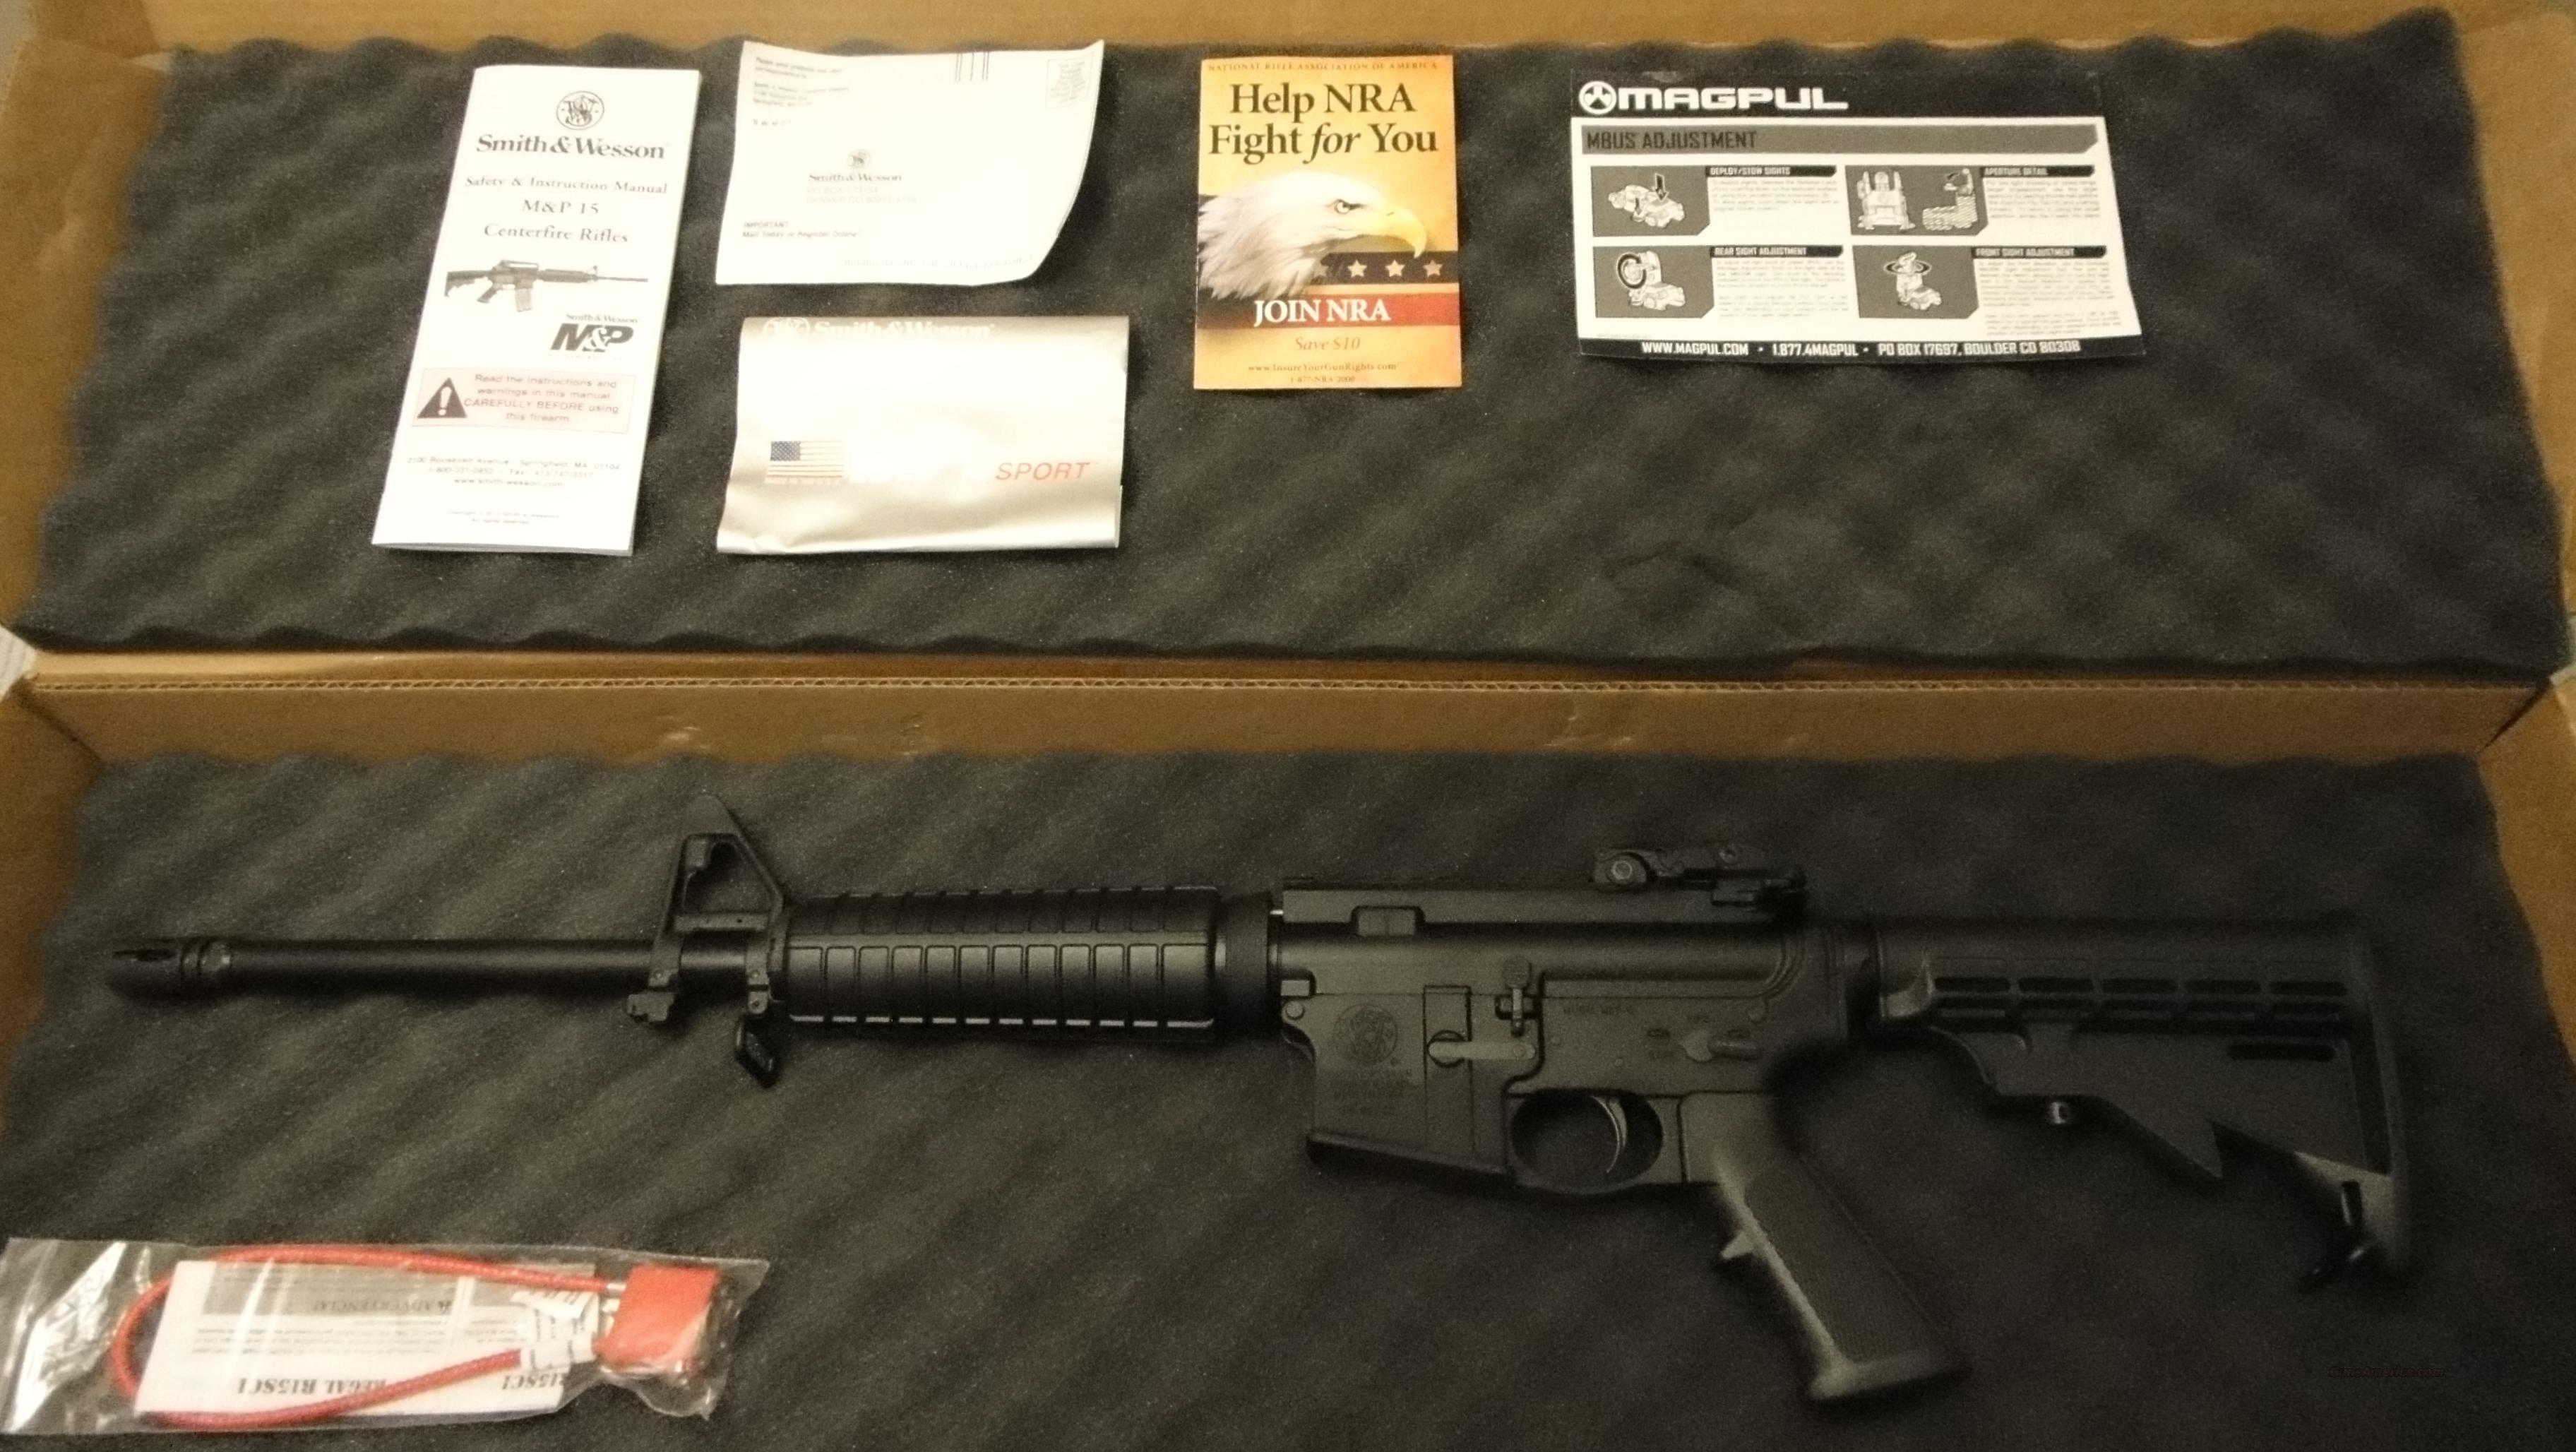 Smith and Wesson M&P- 15 AR-15 Assault Rifle-Get it while you can!   Guns > Rifles > Smith & Wesson Rifles > M&P